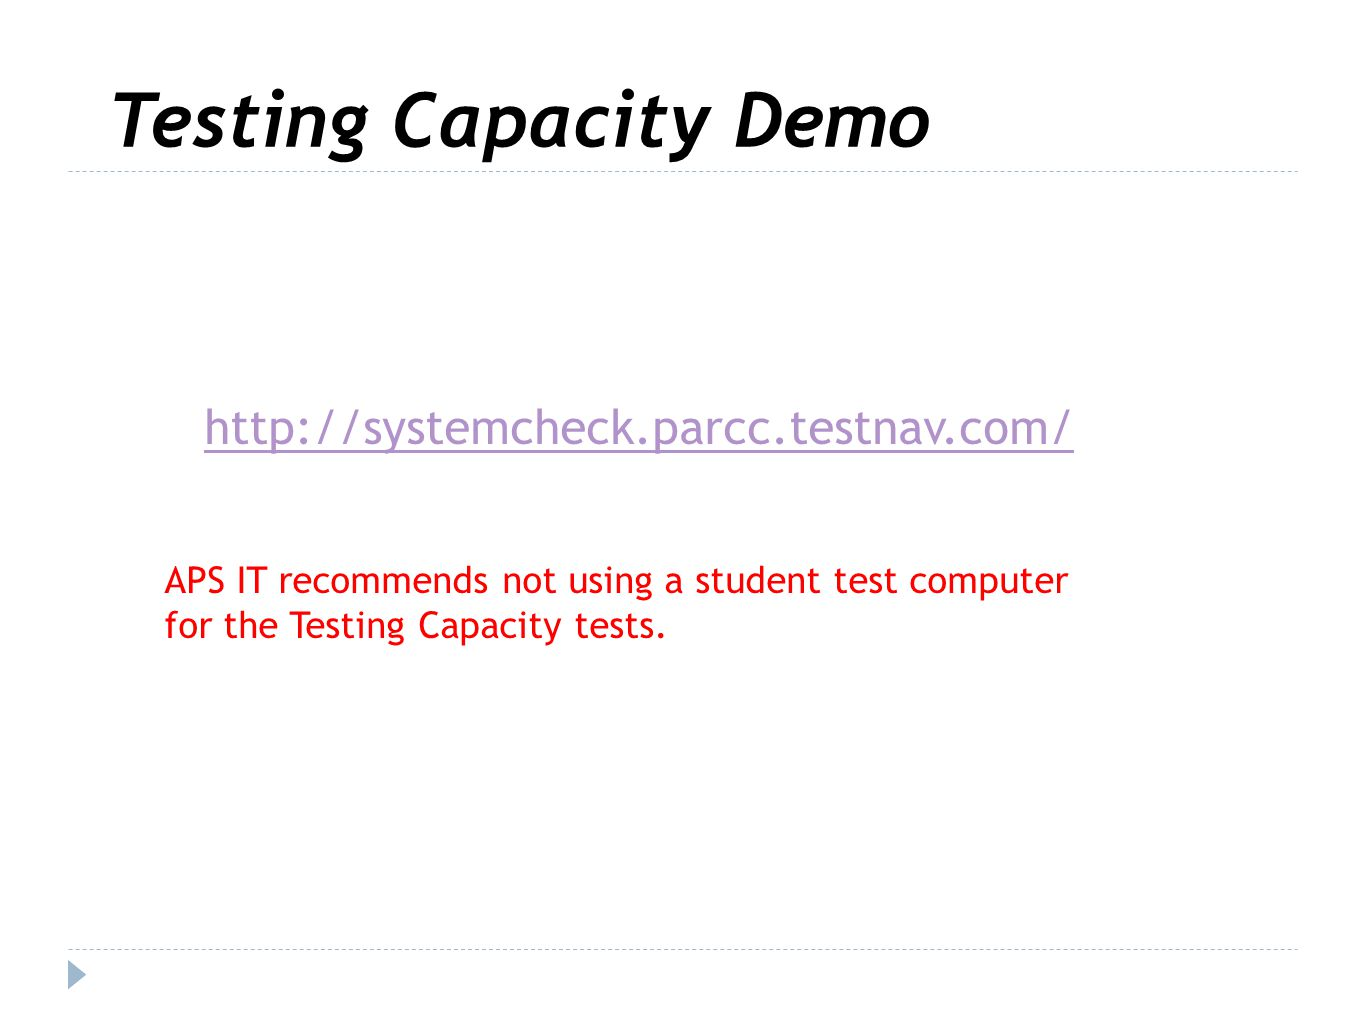 Testing Capacity Demo http://systemcheck.parcc.testnav.com/ APS IT recommends not using a student test computer for the Testing Capacity tests.